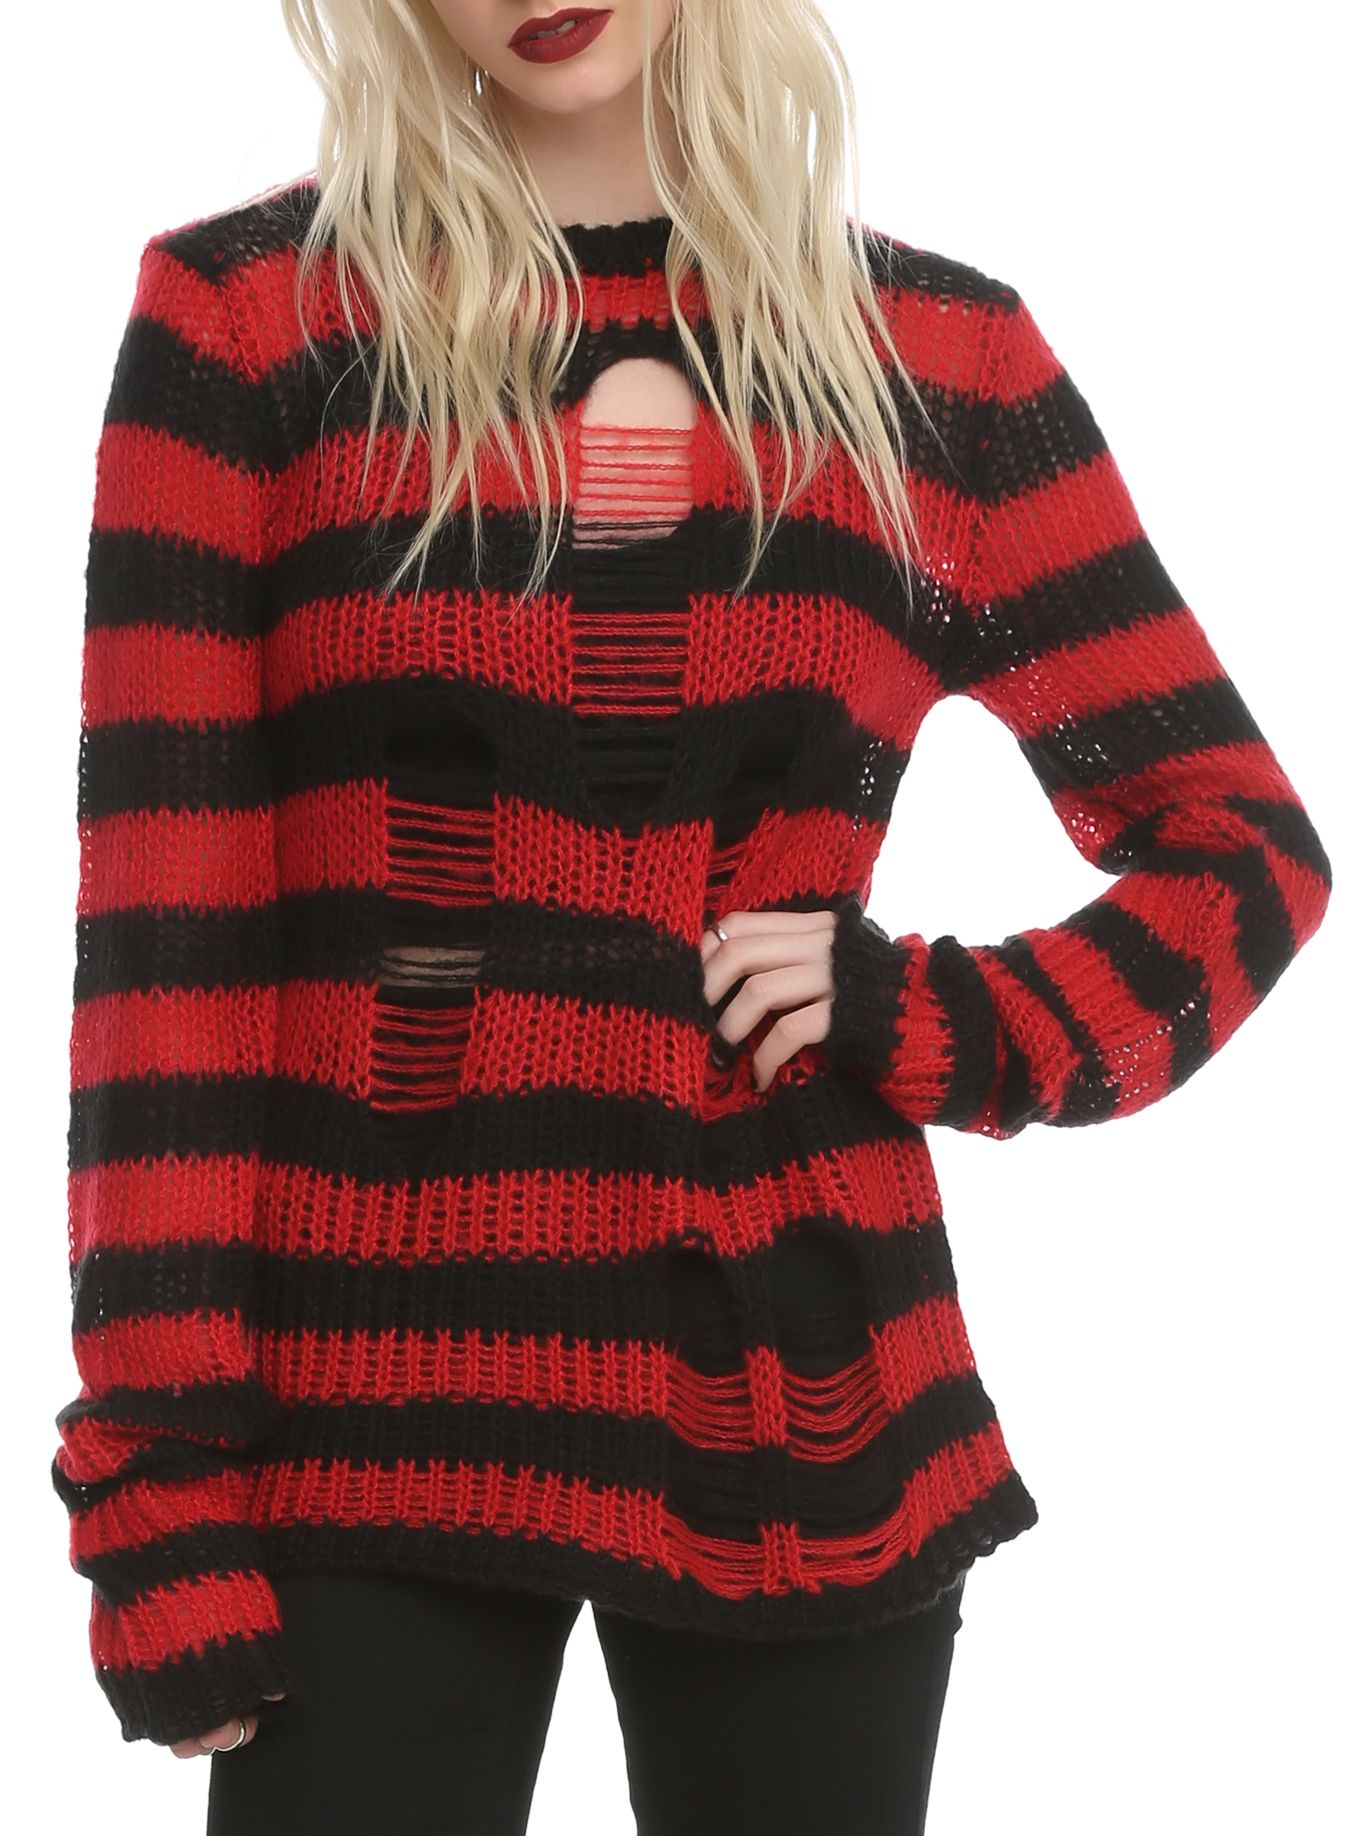 Striped Sweater...Nuthin' Better. | Pin of the Day | Pinterest ...